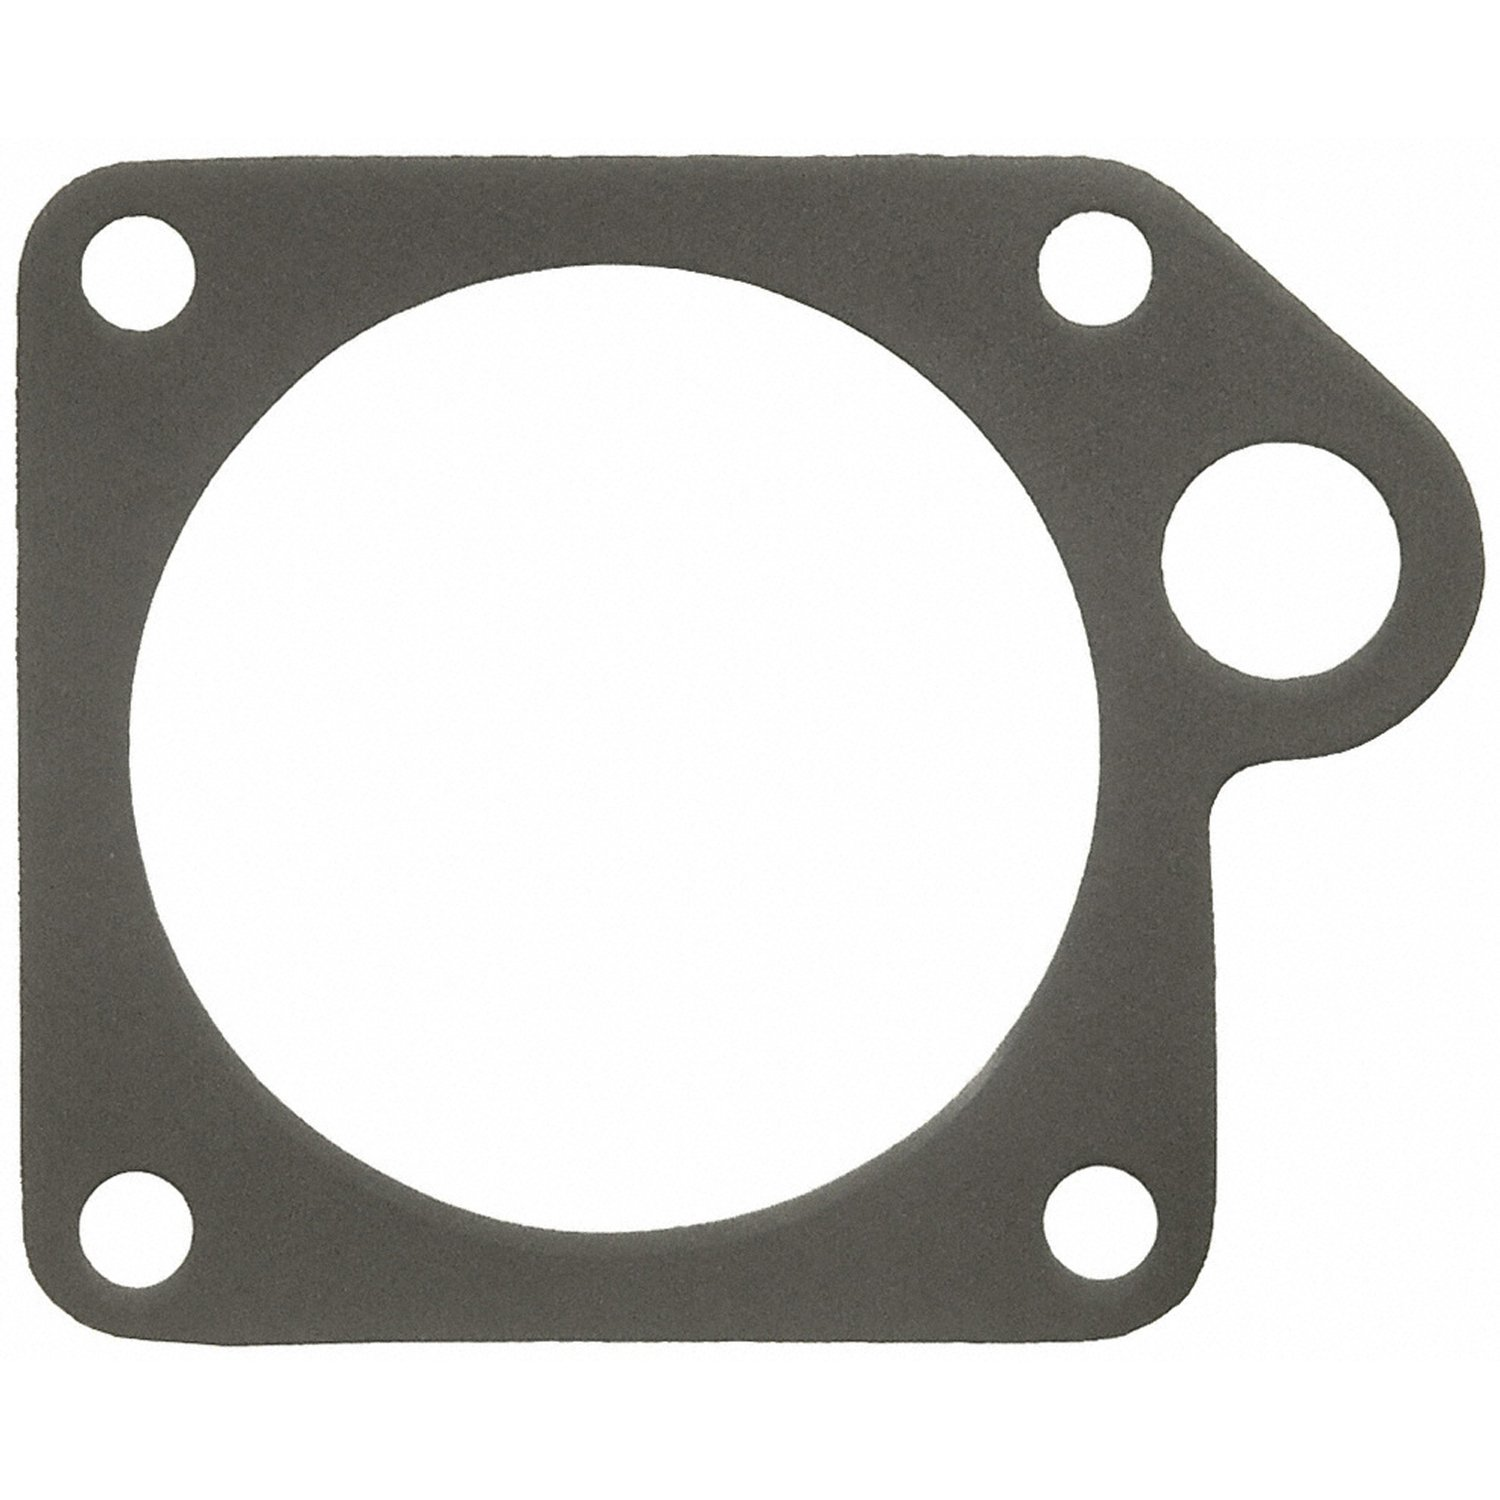 Fel-Pro 60886 Throttle Body Mounting Gasket